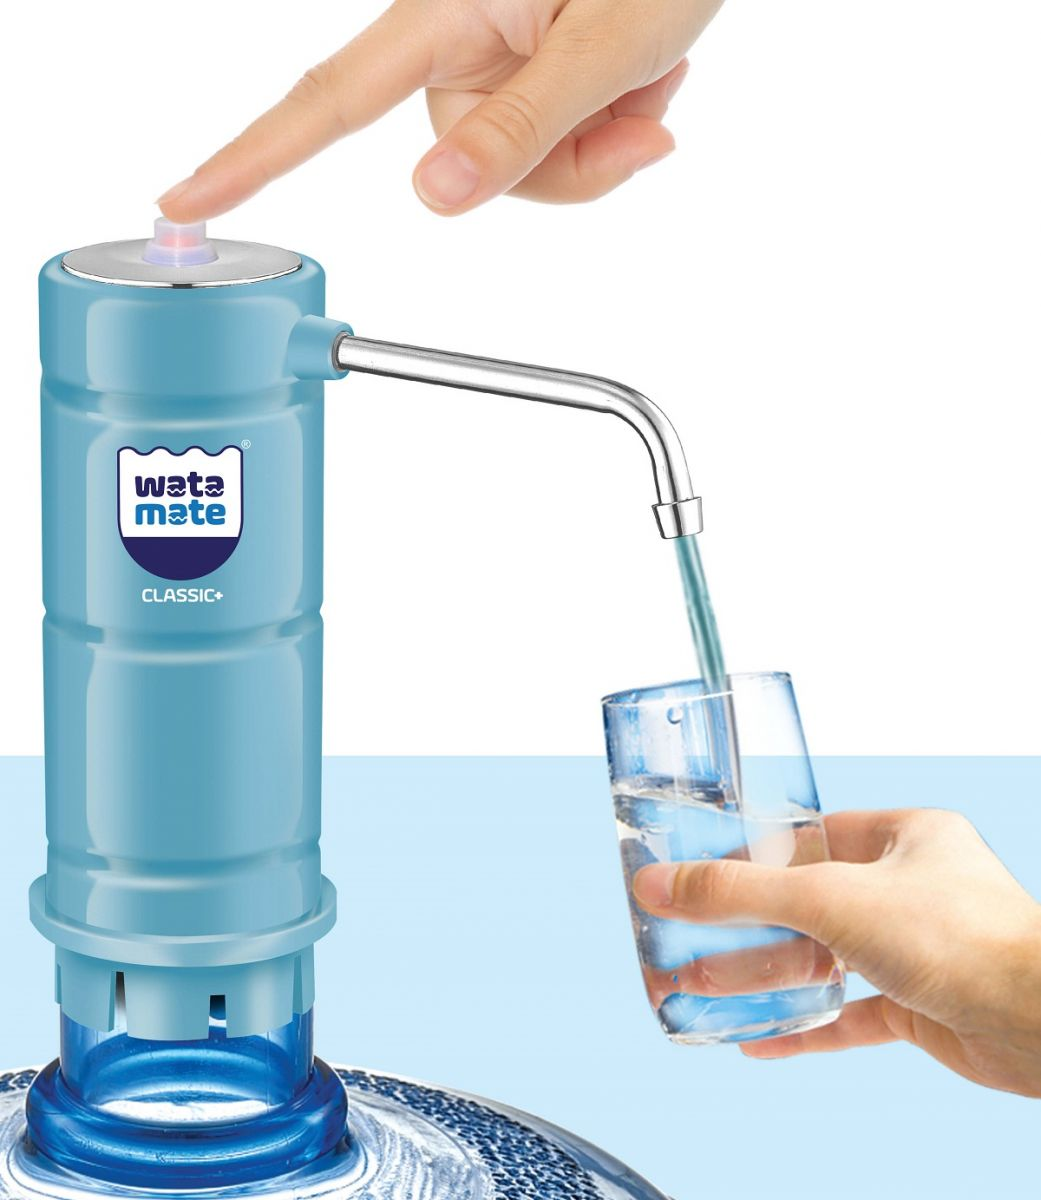 Watamate Classic+, Rechargeable Water Dispenser Pump - Blue